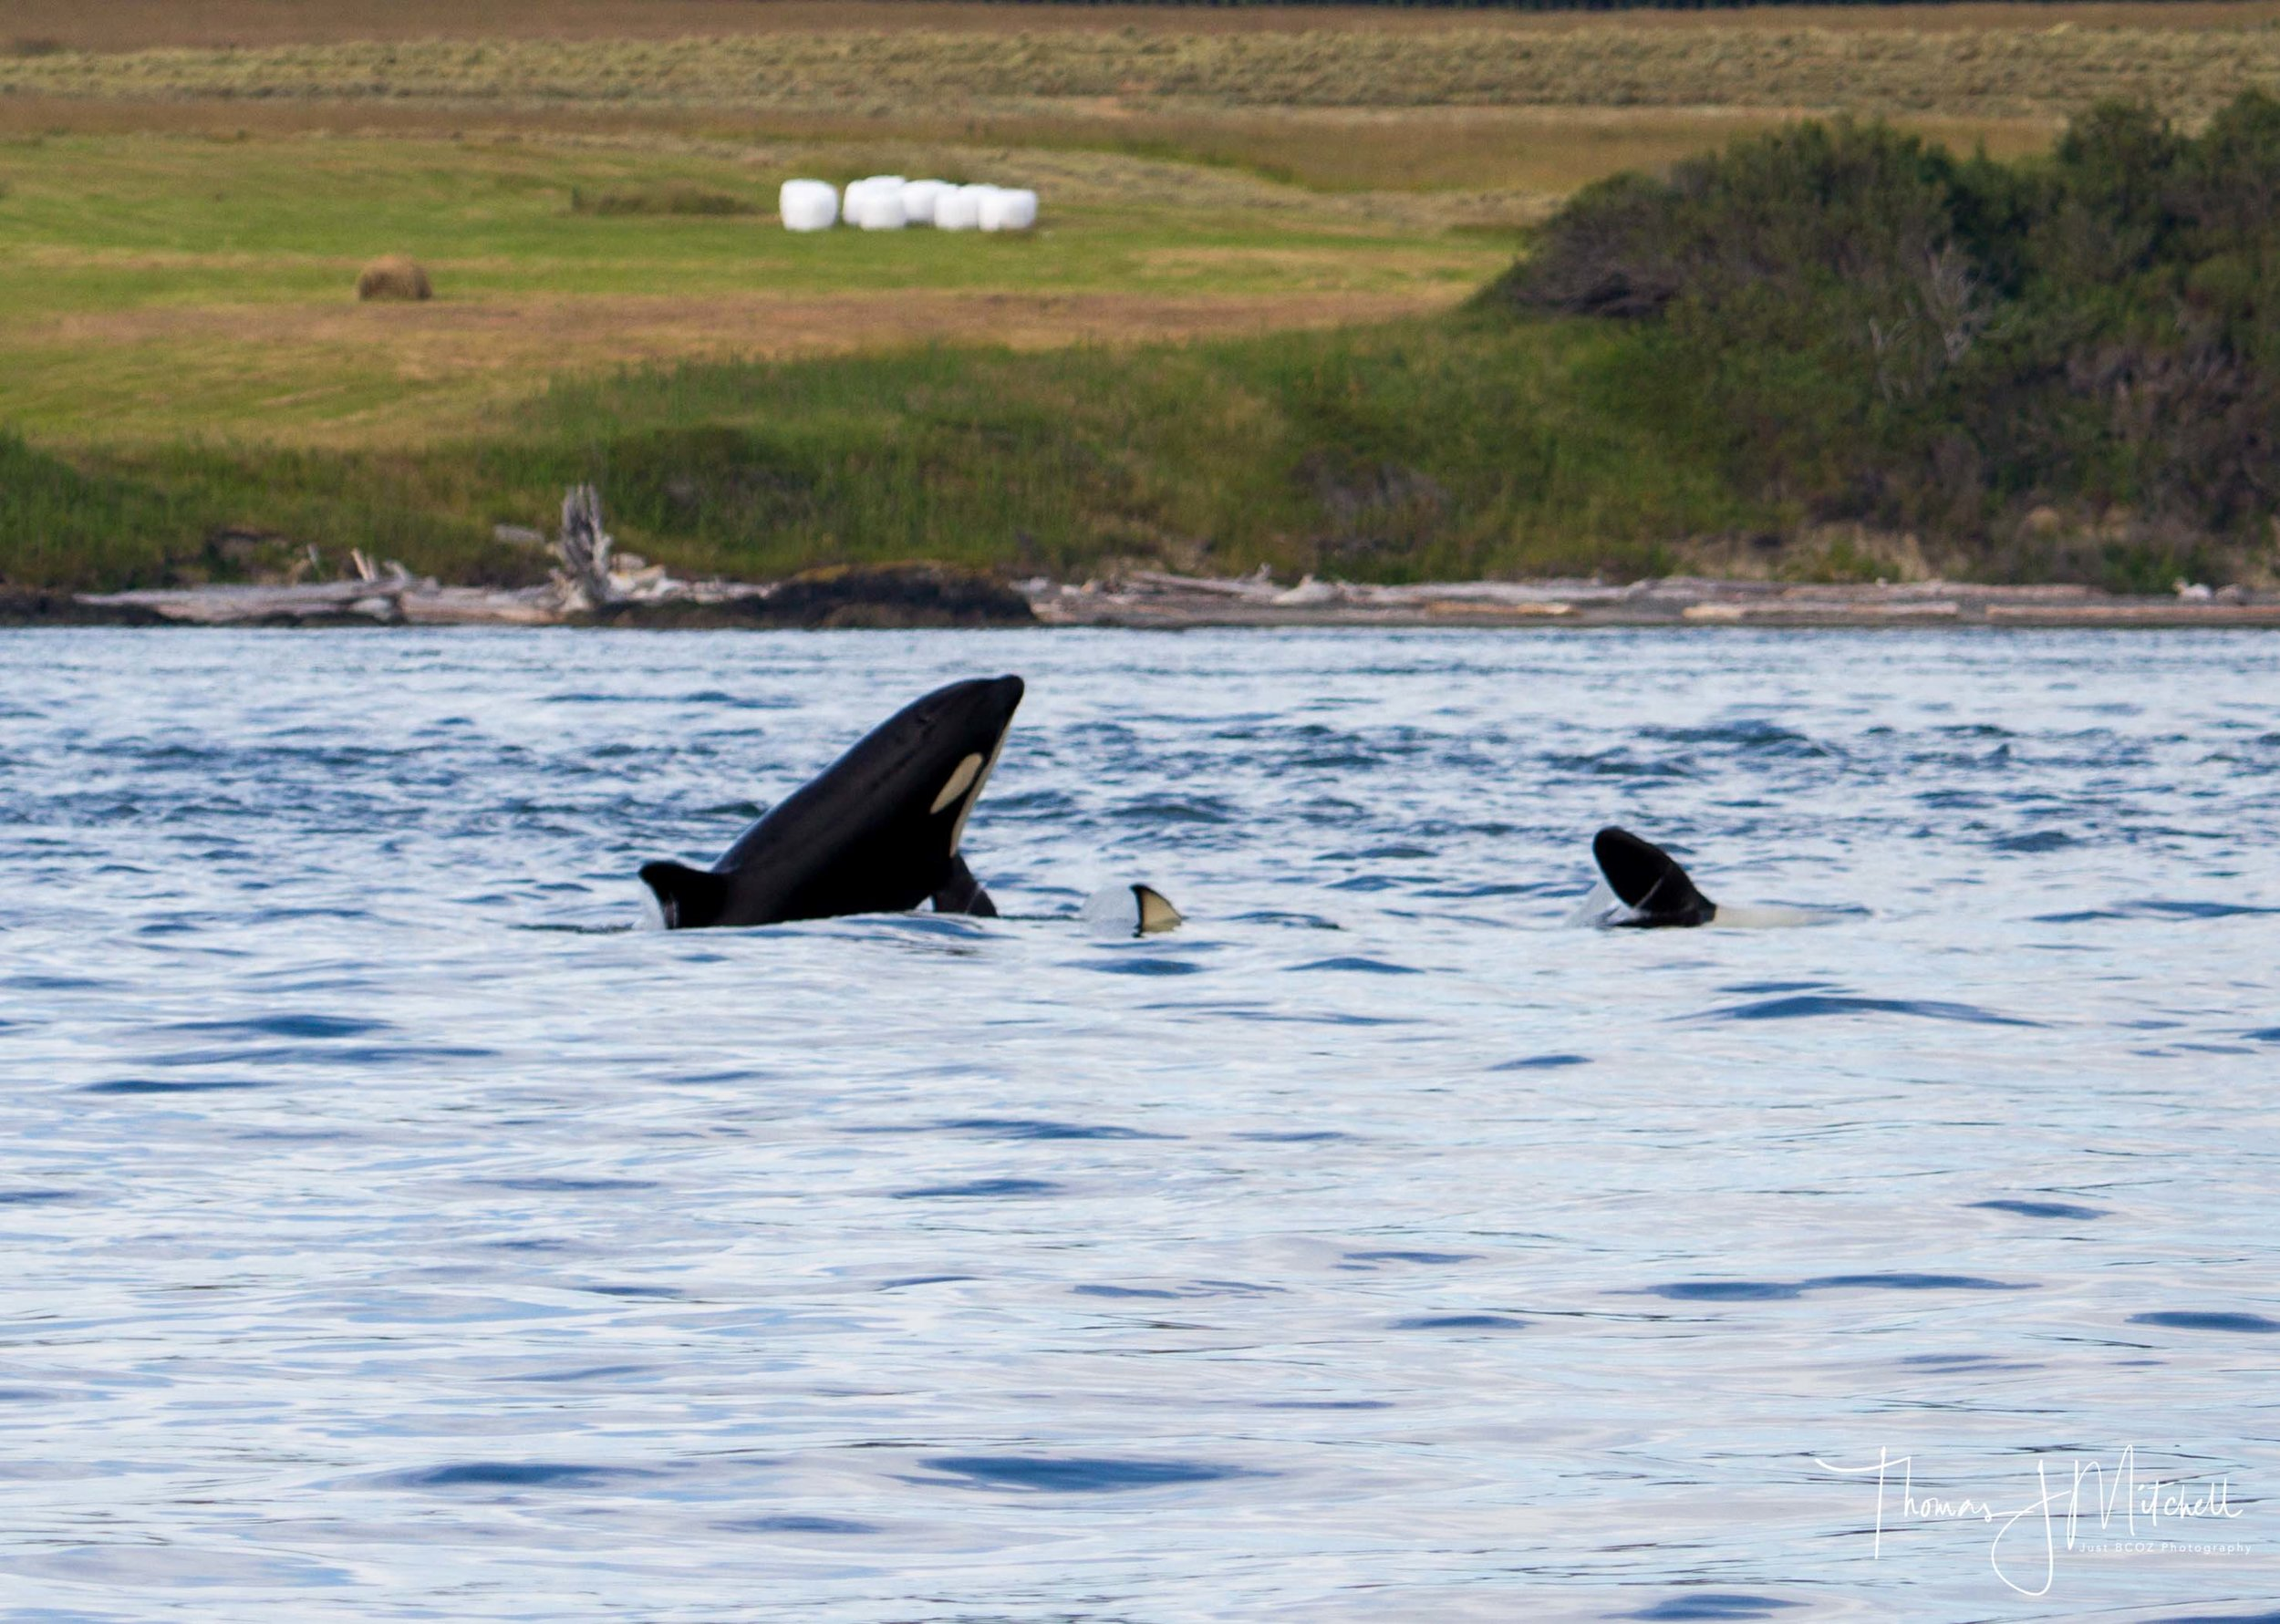 a few young members of J pod socializing with one another along San Juan Island